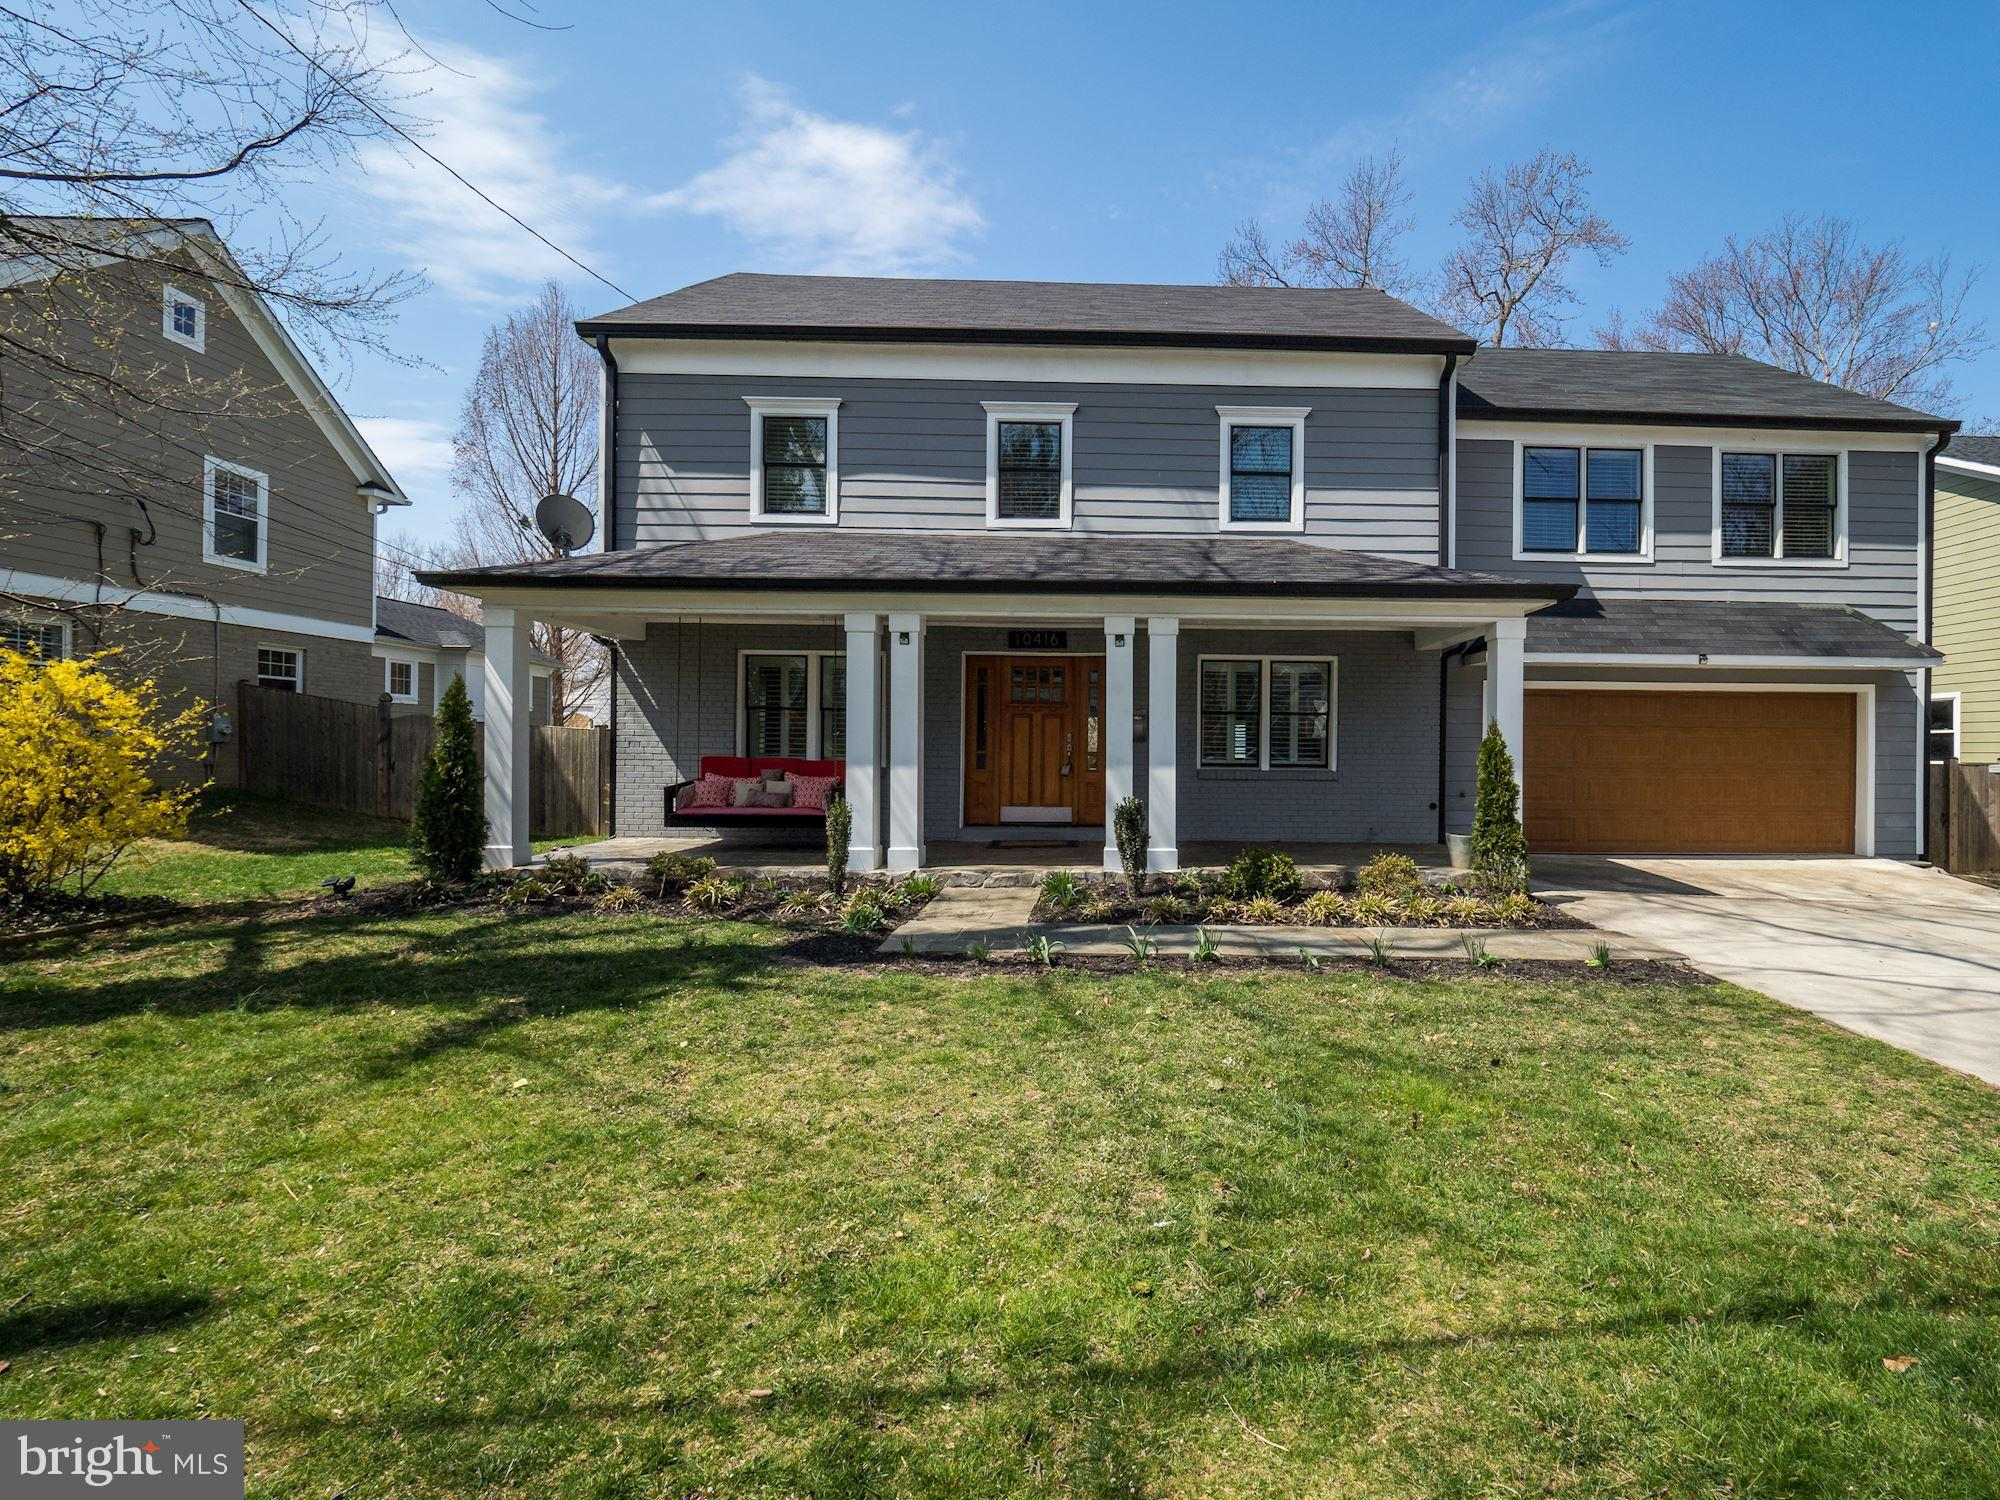 10416 EWELL AVENUE, KENSINGTON, MD 20895